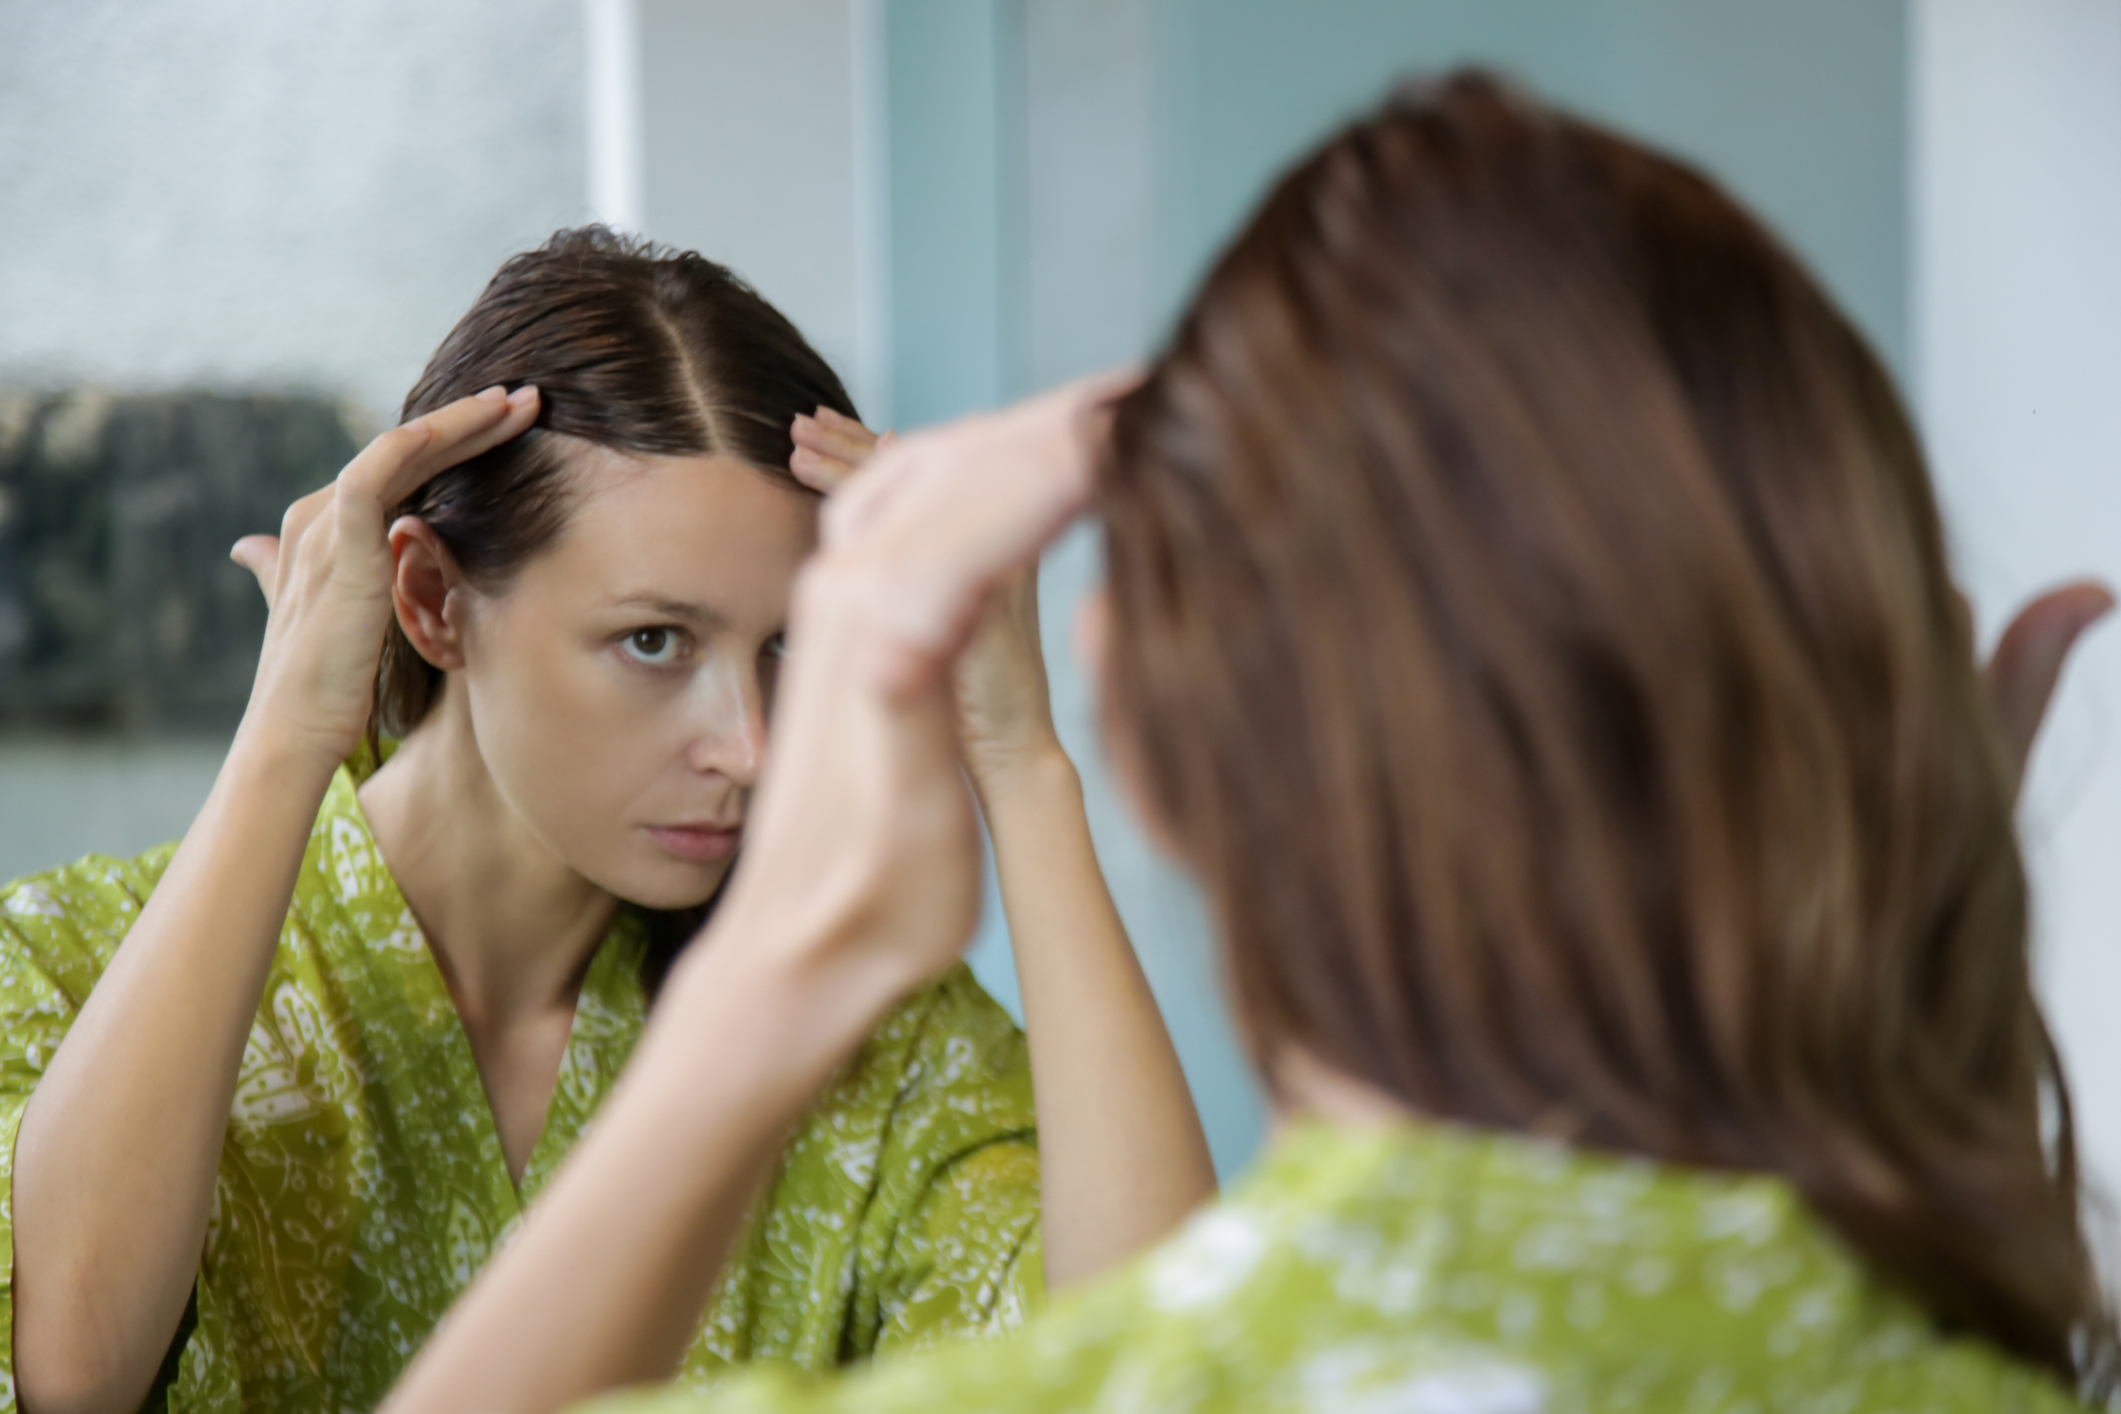 Can stress really make your hair fall out?